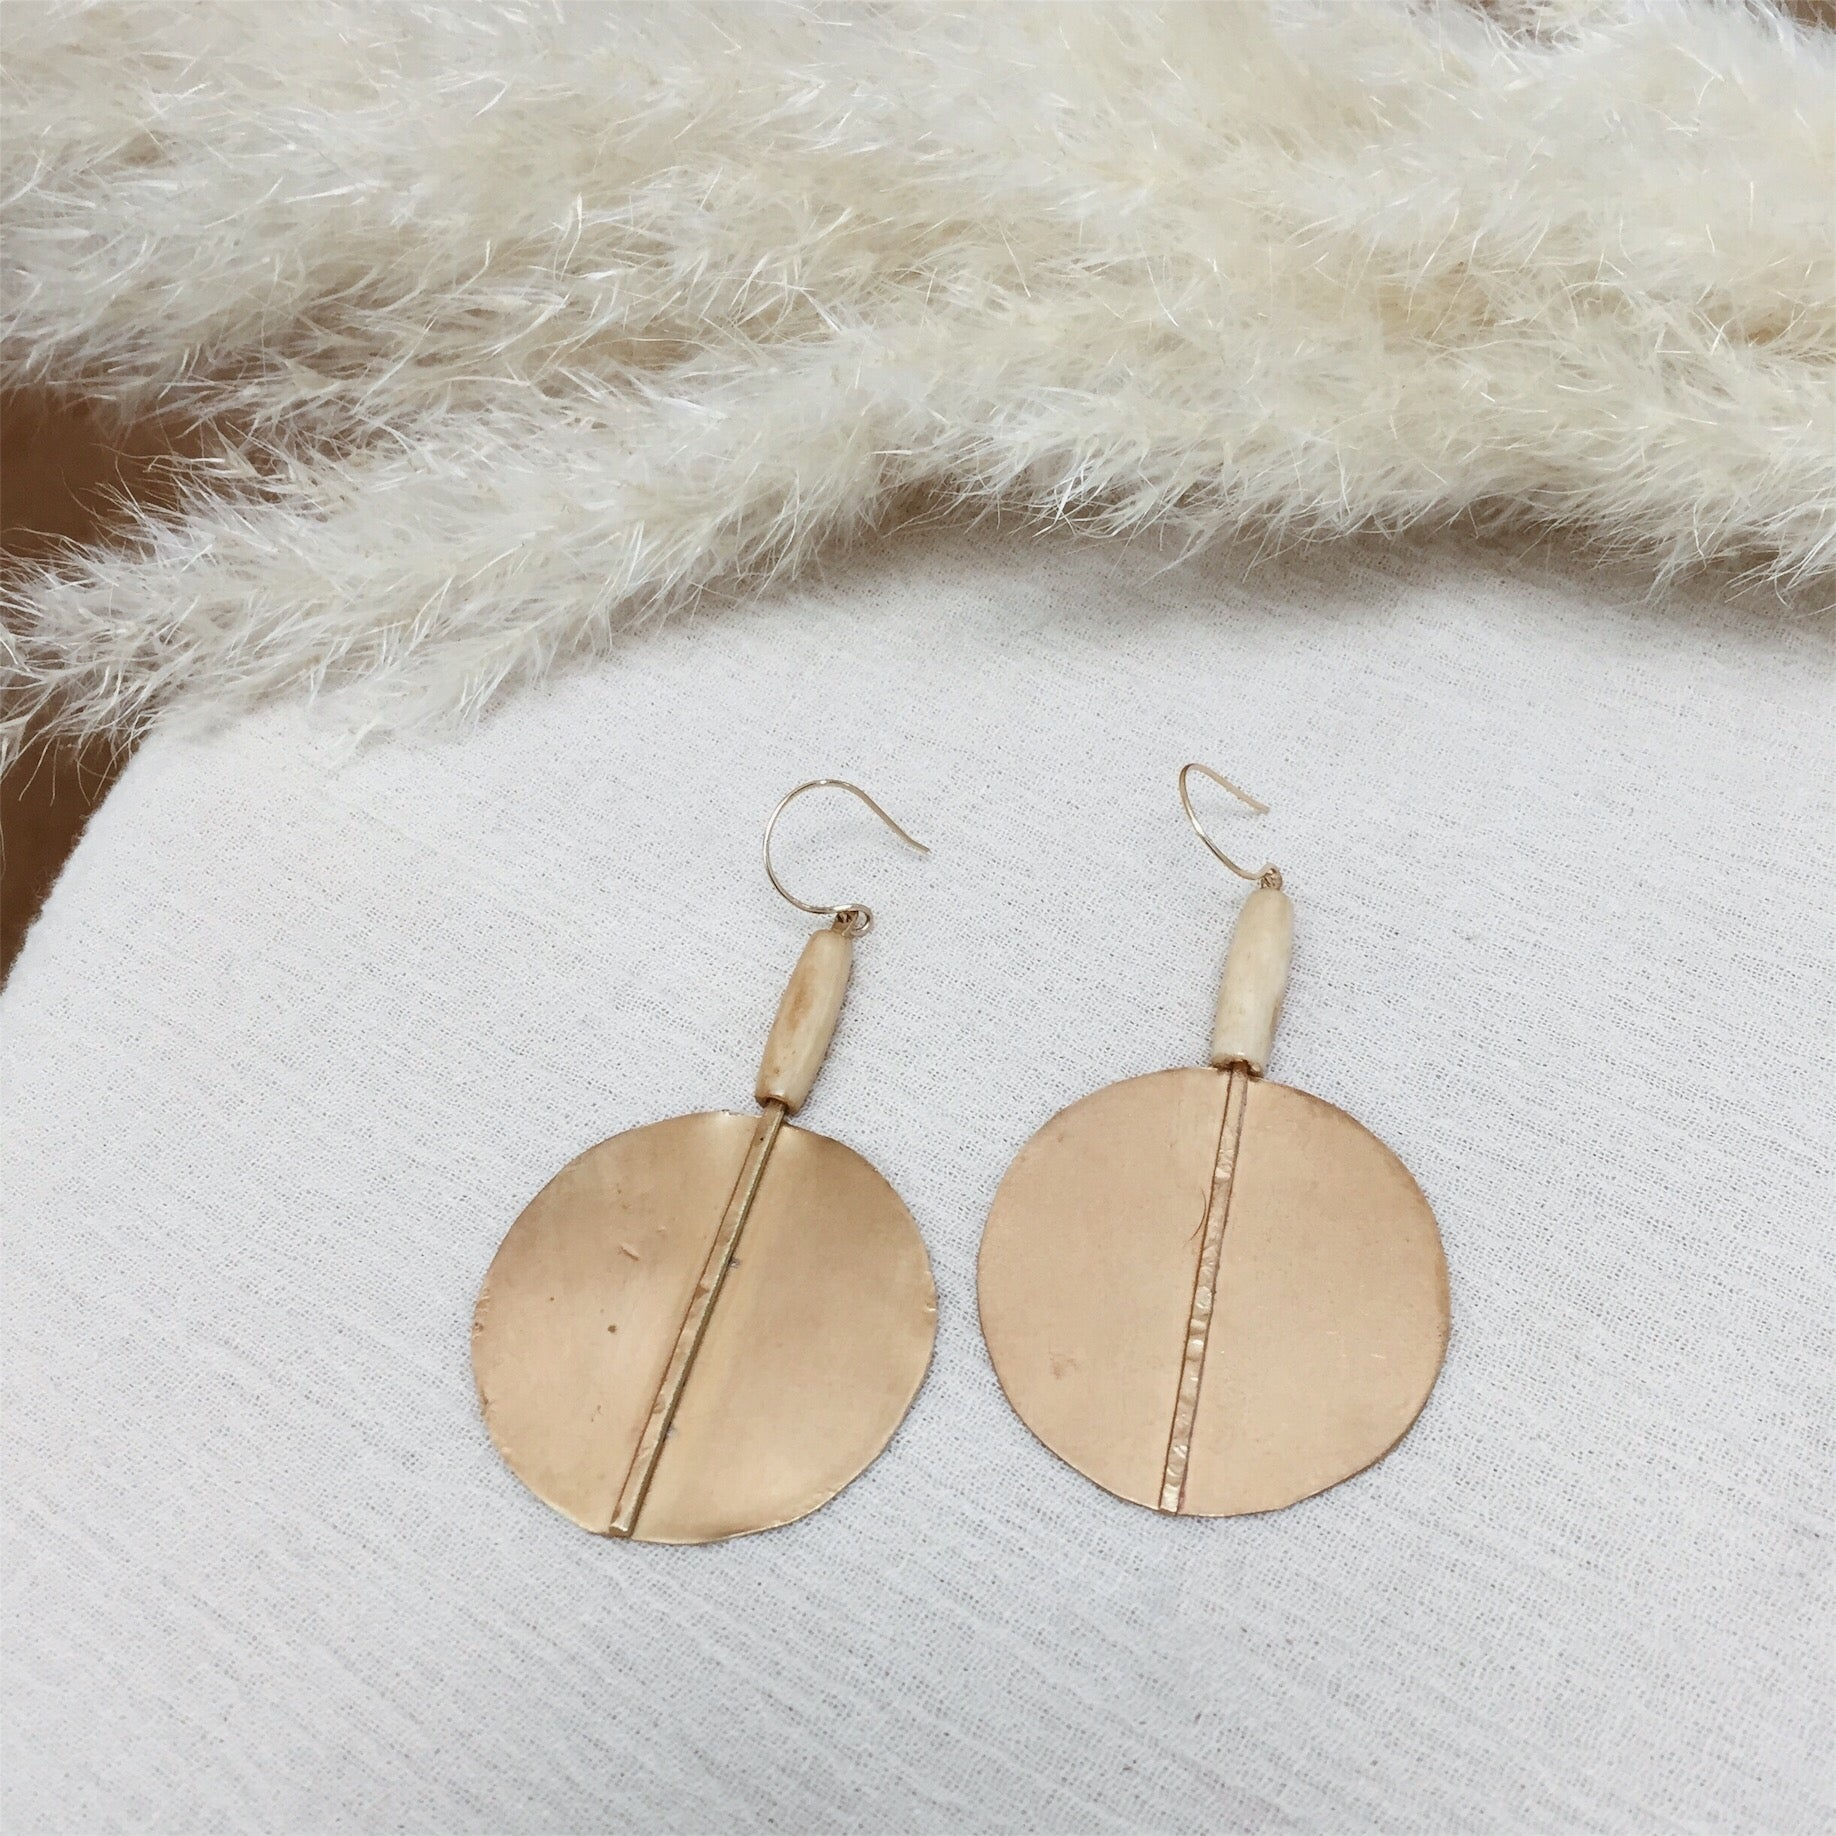 handmade earrings //